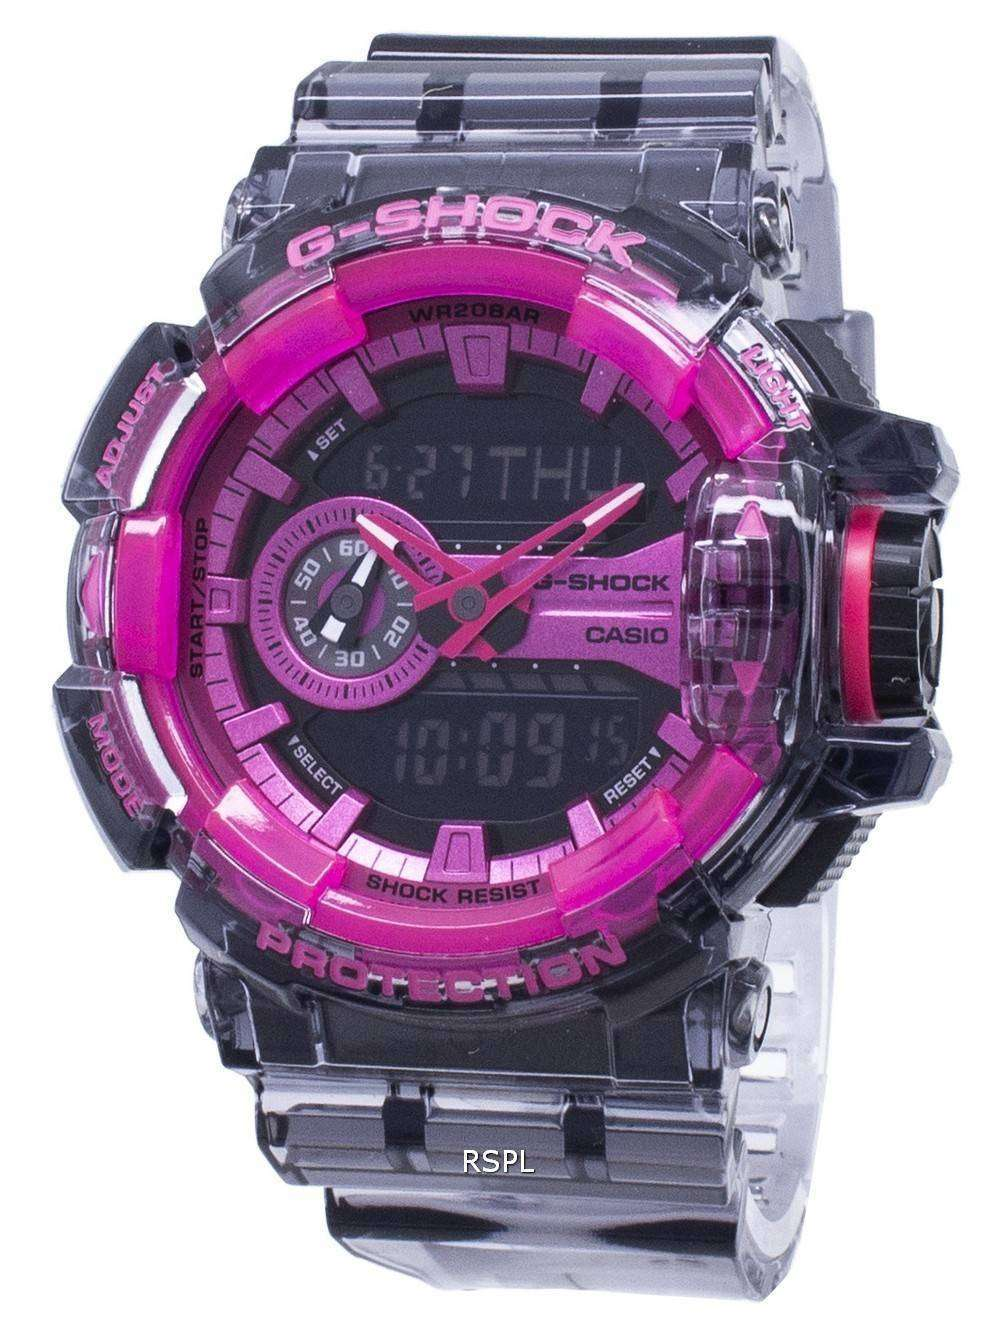 info for 09aa2 4ae72 Casio G-Shock GA-400SK-1A4 GA400SK-1A4 Shock Resistant 200M Men's Watch